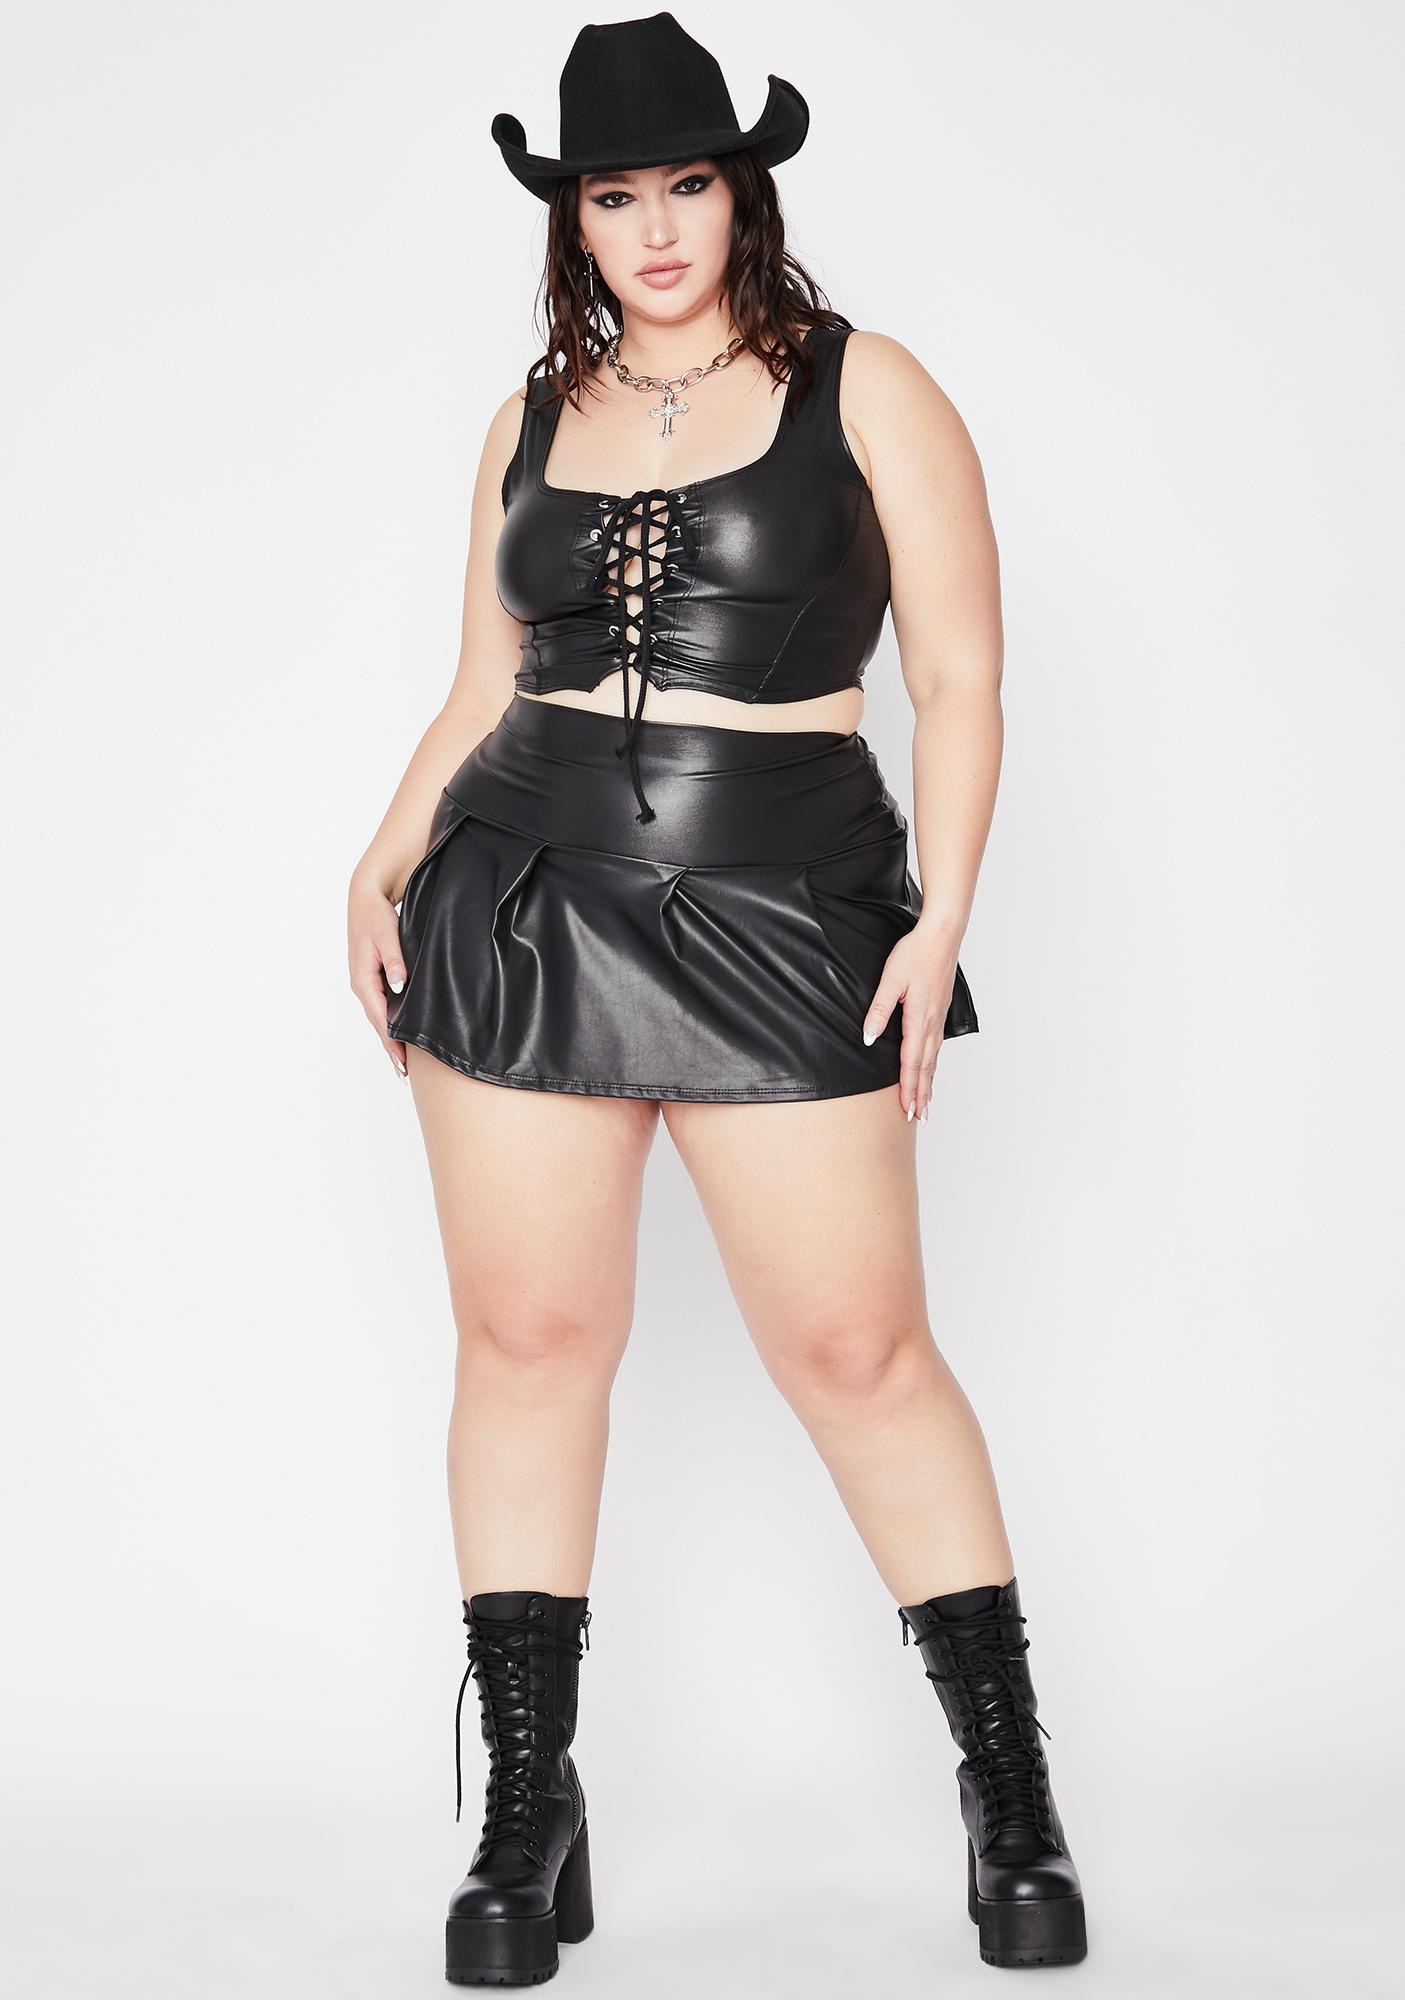 BB Black Hearted Faux Leather Set